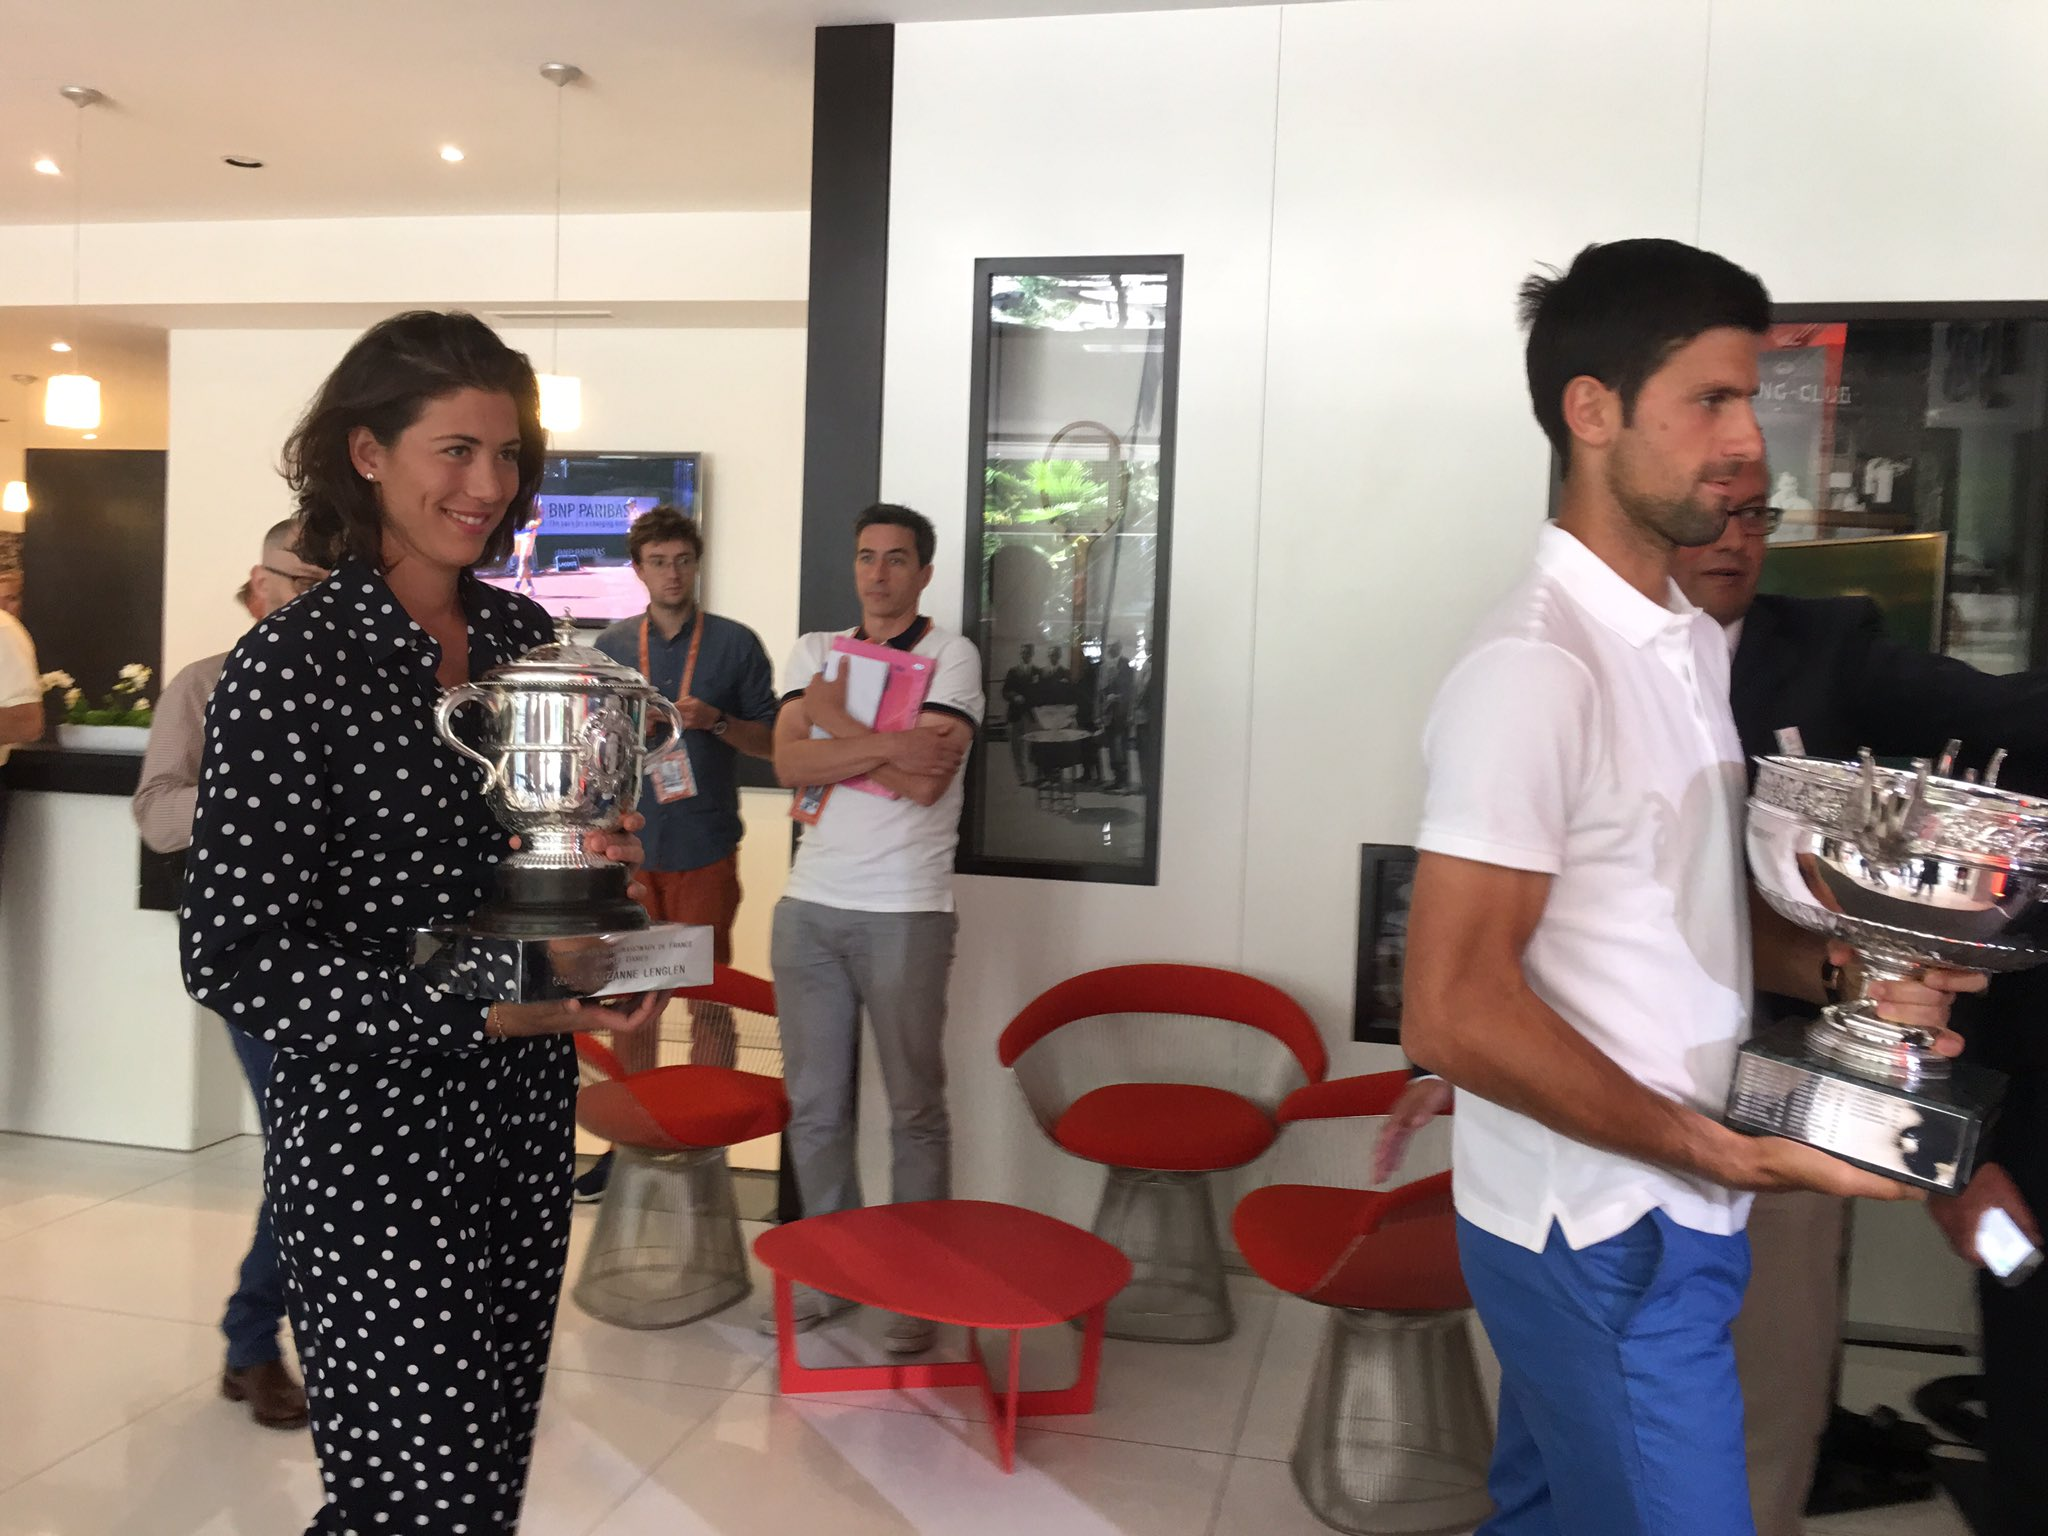 Bringing back the trophies... with @DjokerNole today at @rolandgarros https://t.co/Ro3Mw2s4Ac